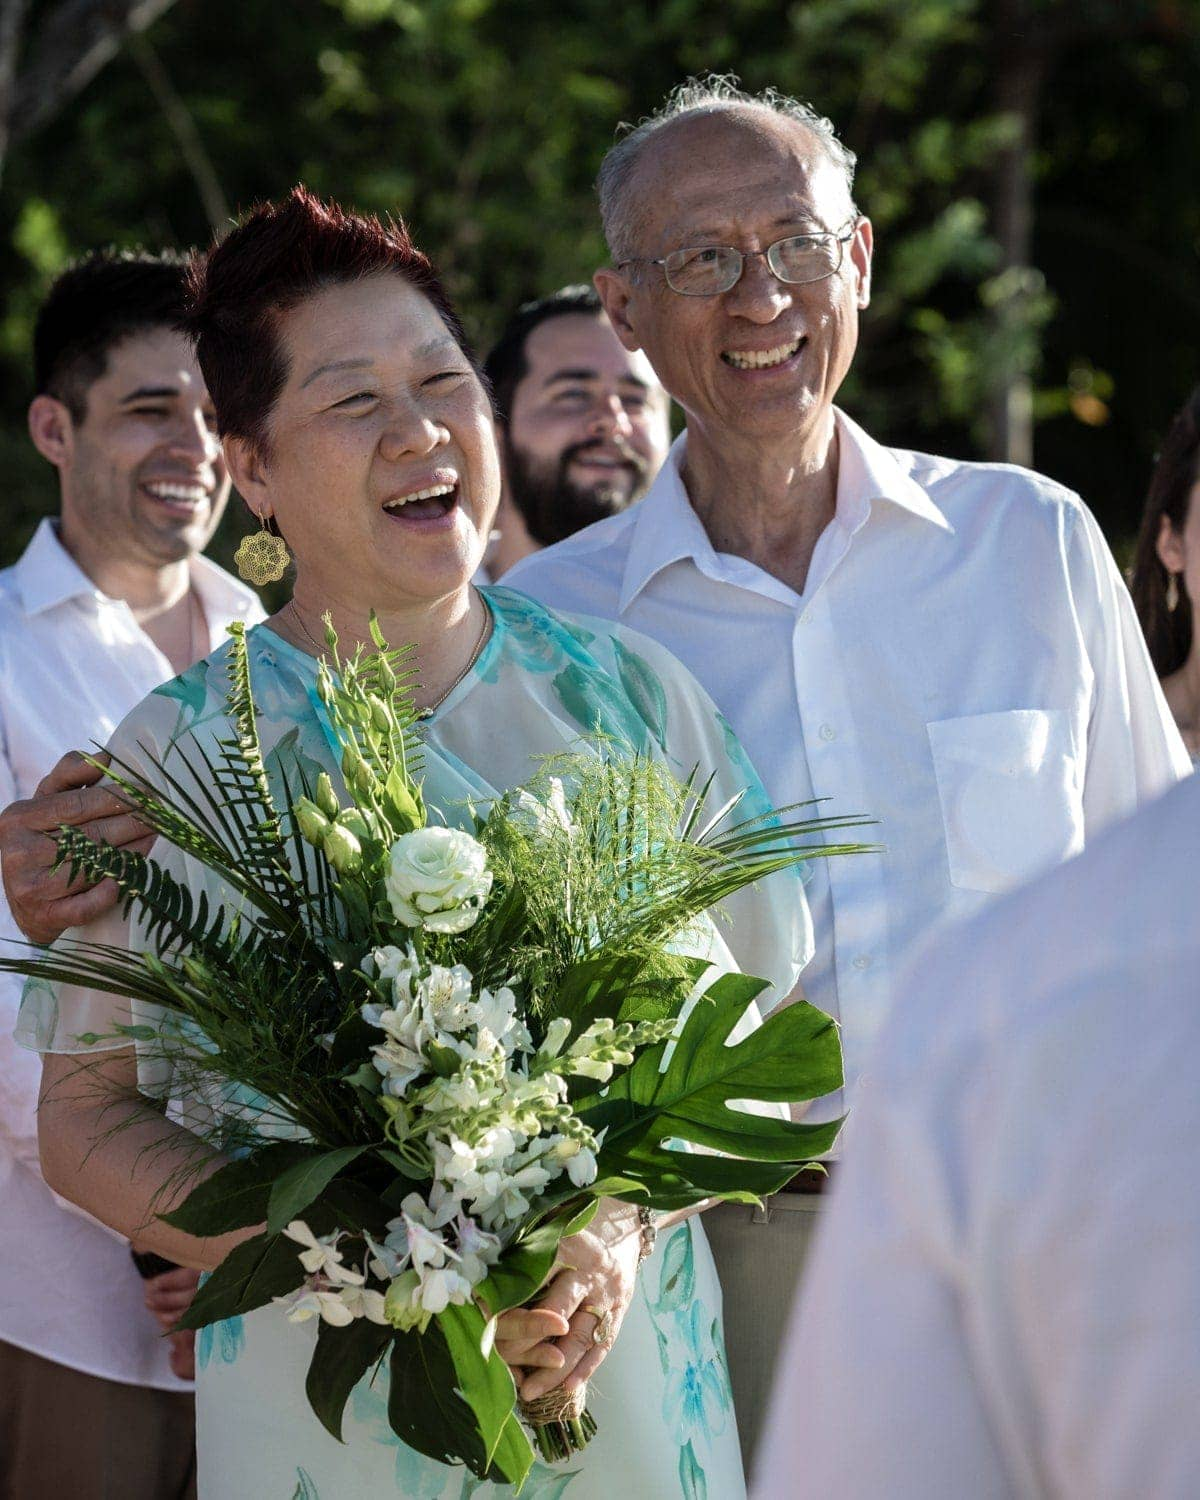 Grooms parents smile as they watch their son's beach wedding ceremony in Costa Rica.